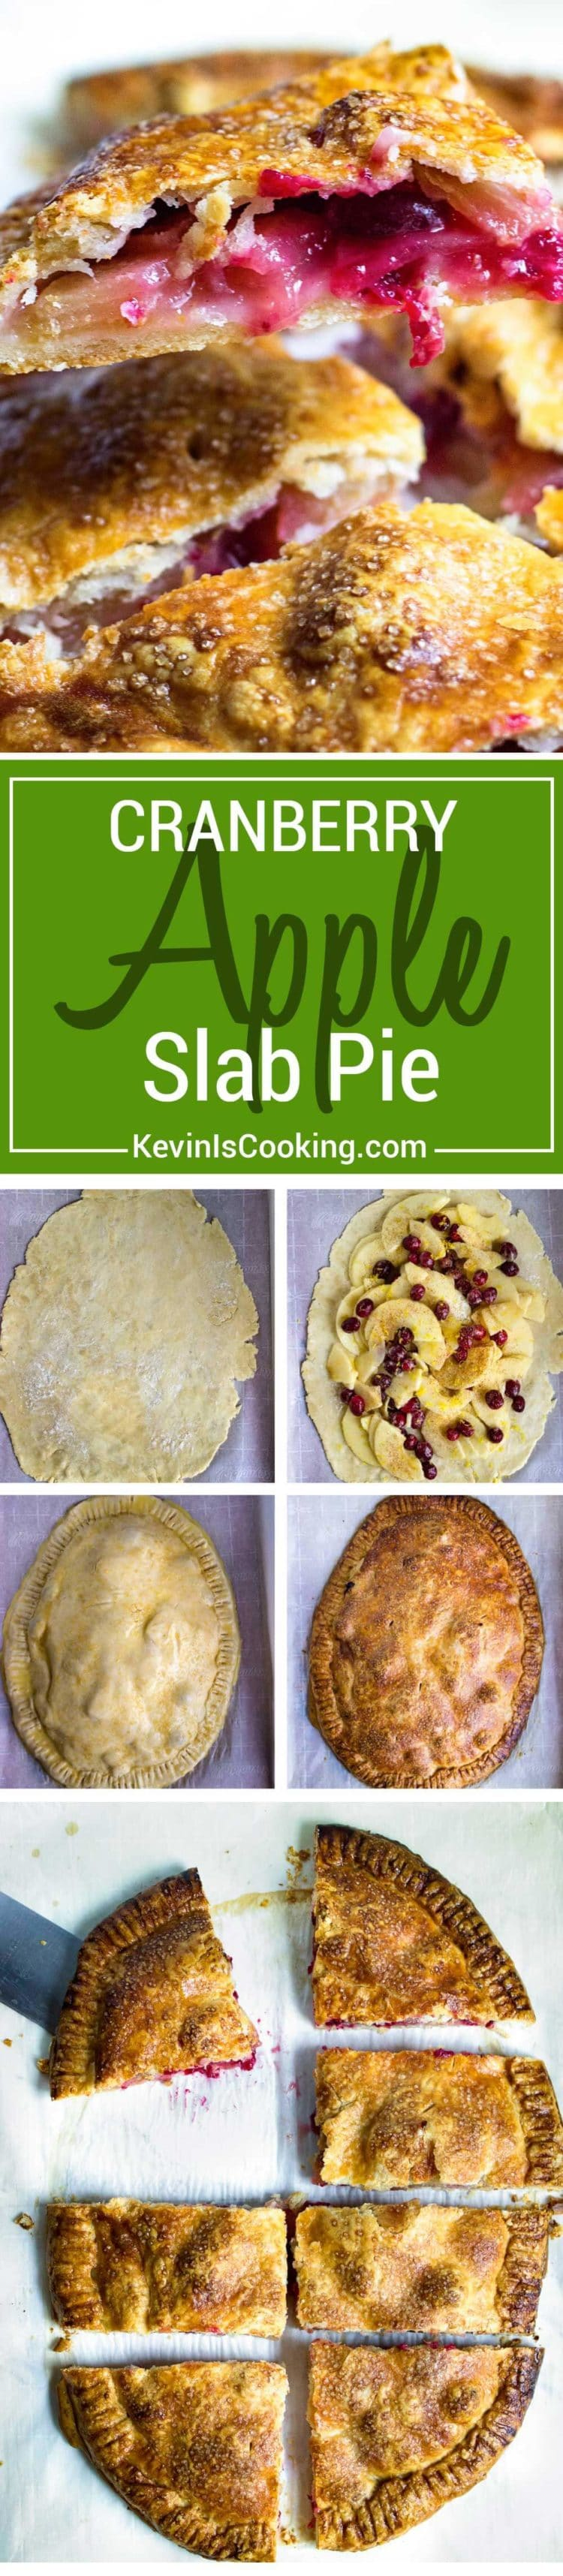 Buttery, flakey pastry dough is free formed on a baking sheet and topped with fresh cranberries, apples, lemon zest and covered to bake to a golden brown. Slide on a citing board and cut for guests. This Cranberry Apple Slab Pie is great for the family, no pie pan required!